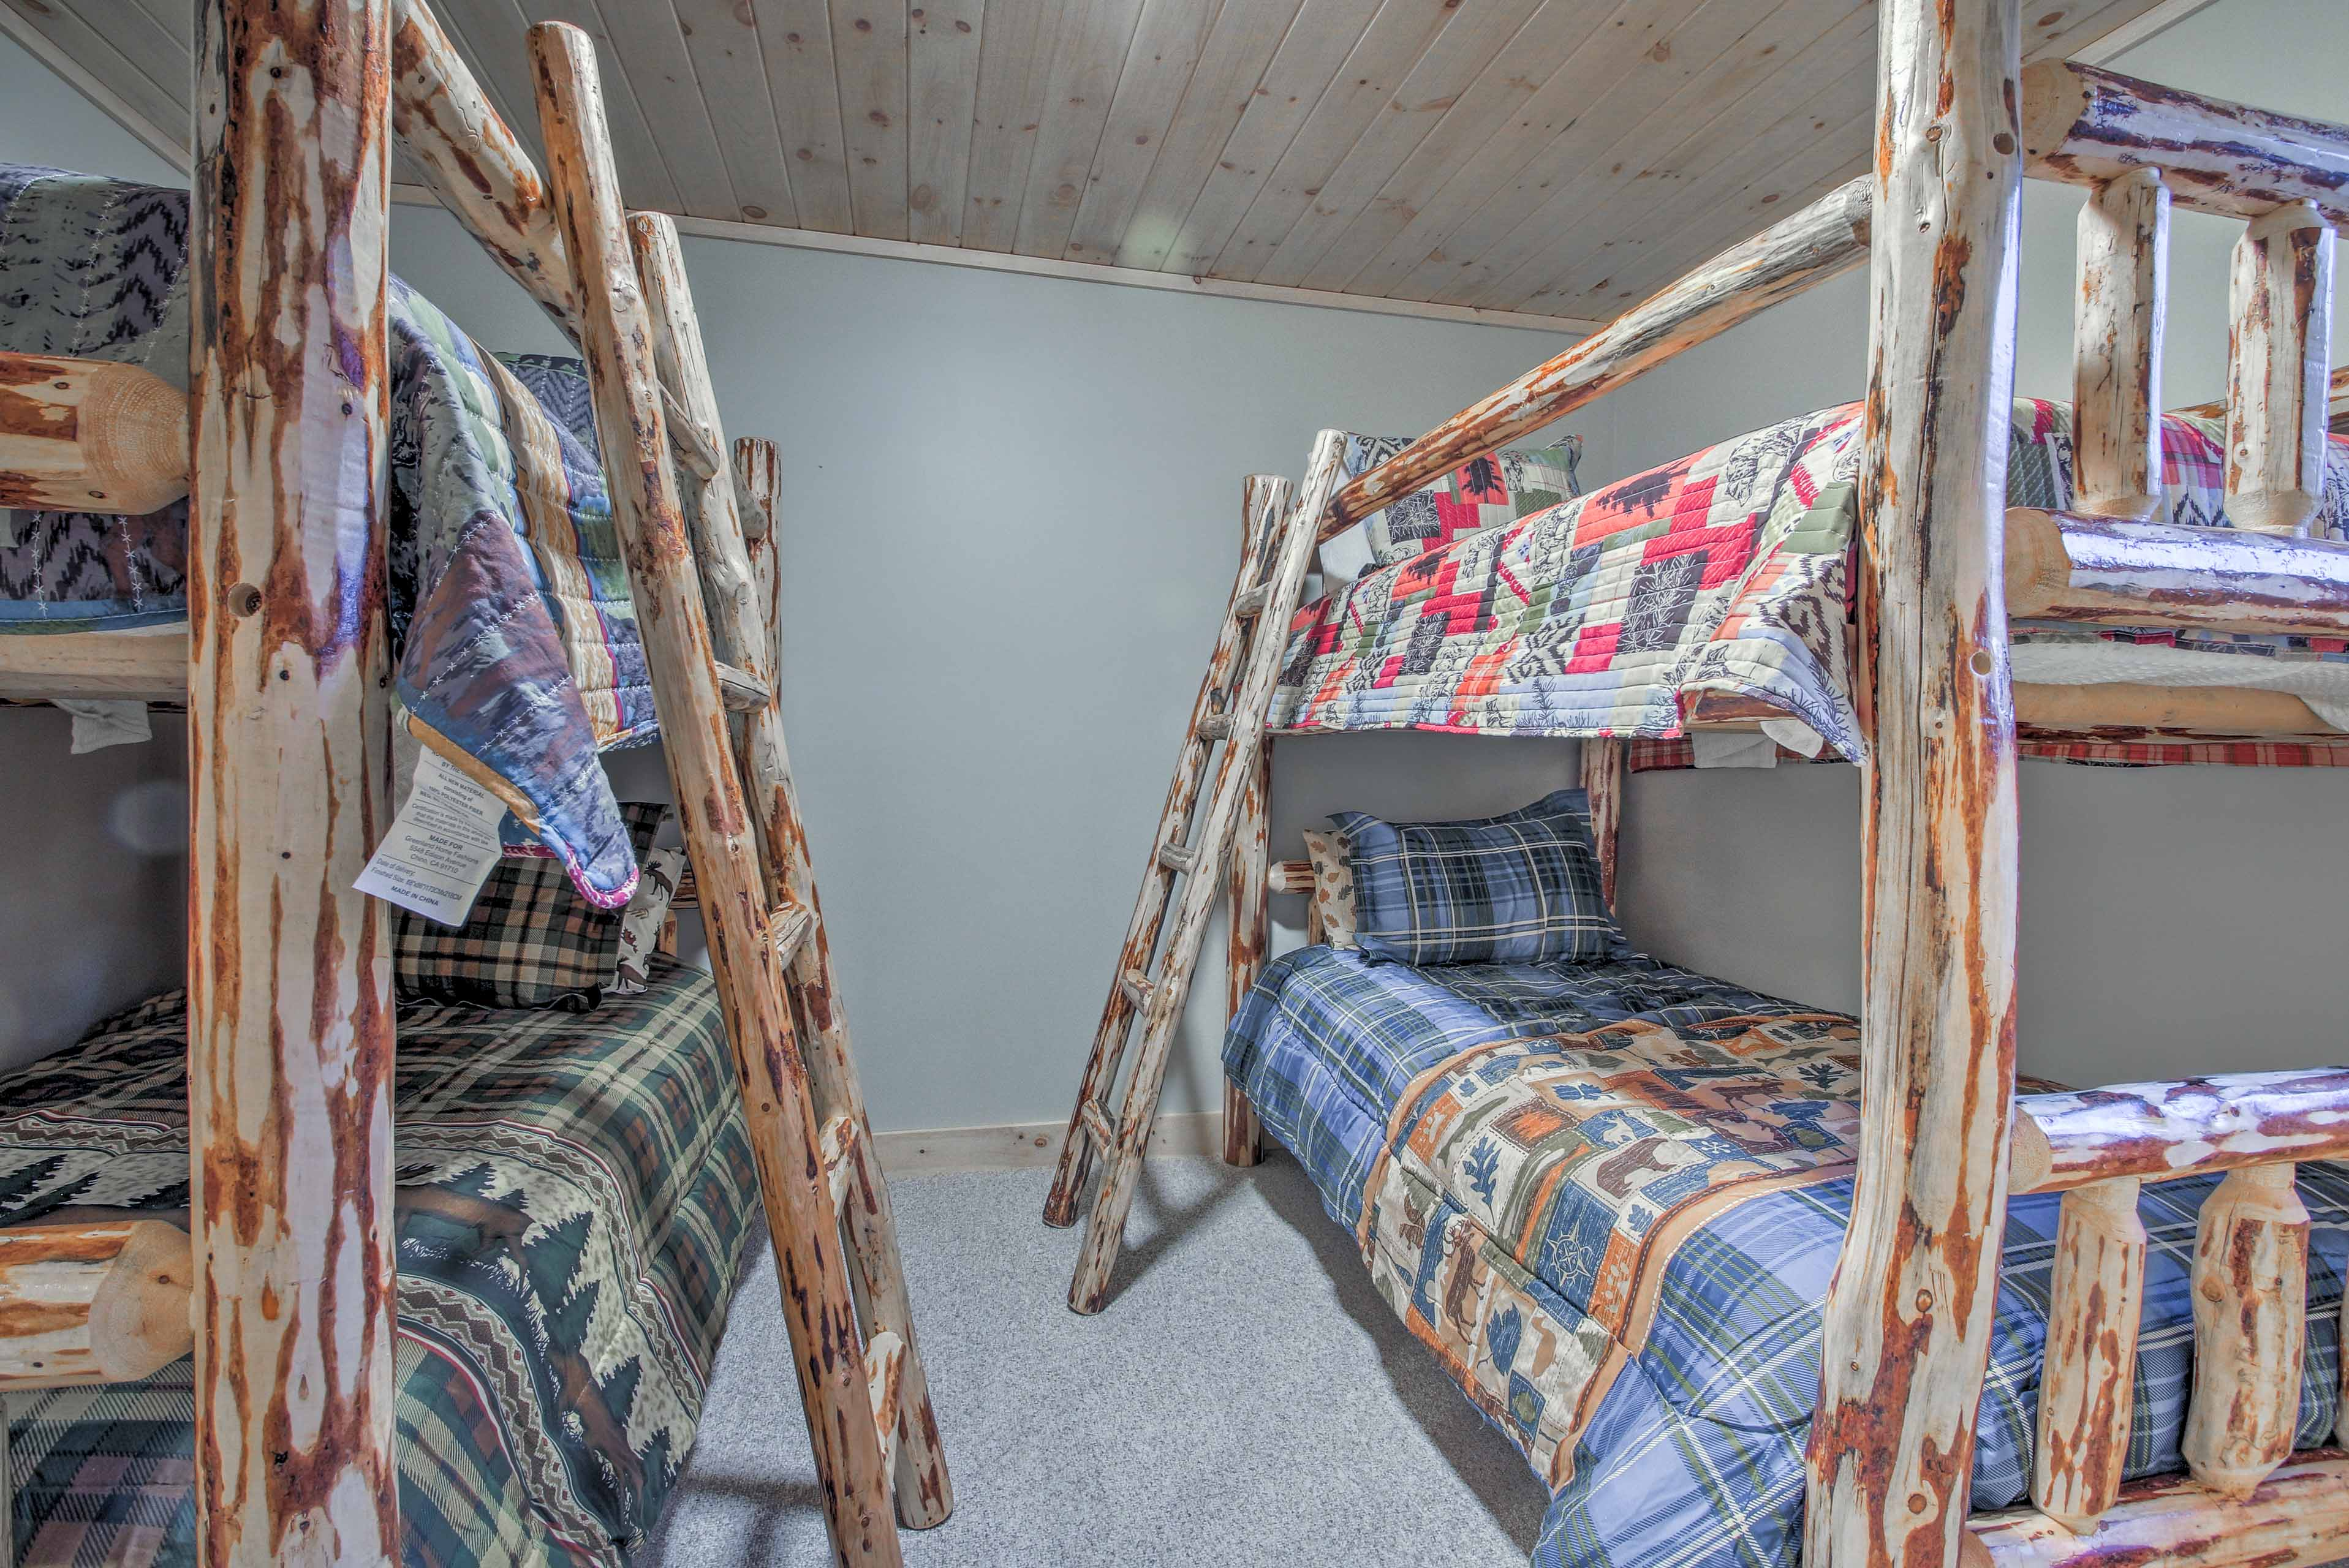 Other youngsters can make this bunk room their new sleeping quarters.